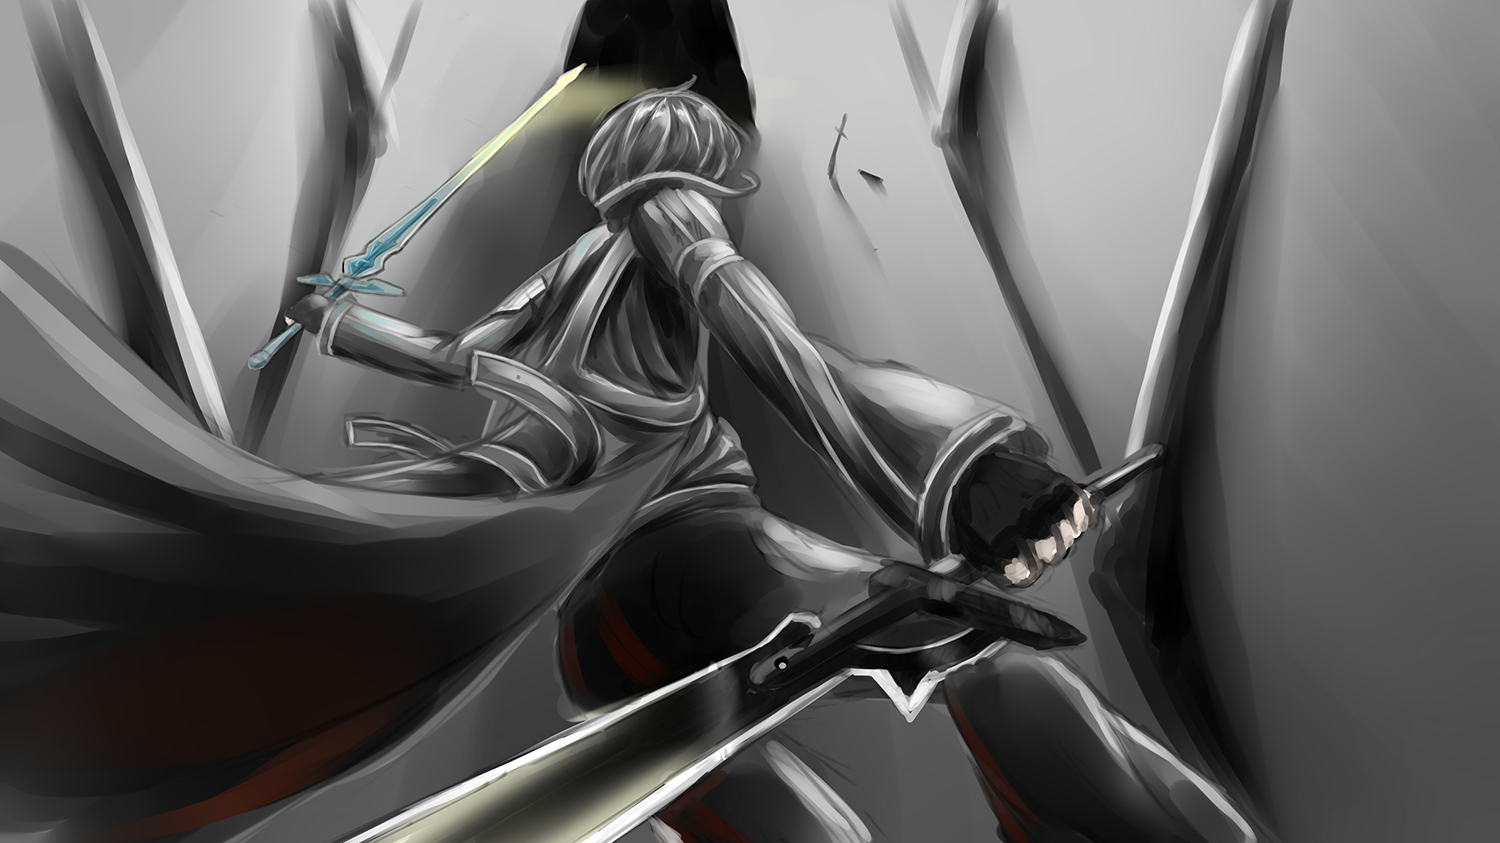 konachan 142731 black_hair kirigaya_kazuto old_books short_hair sword sword_art_online weapon.jpg